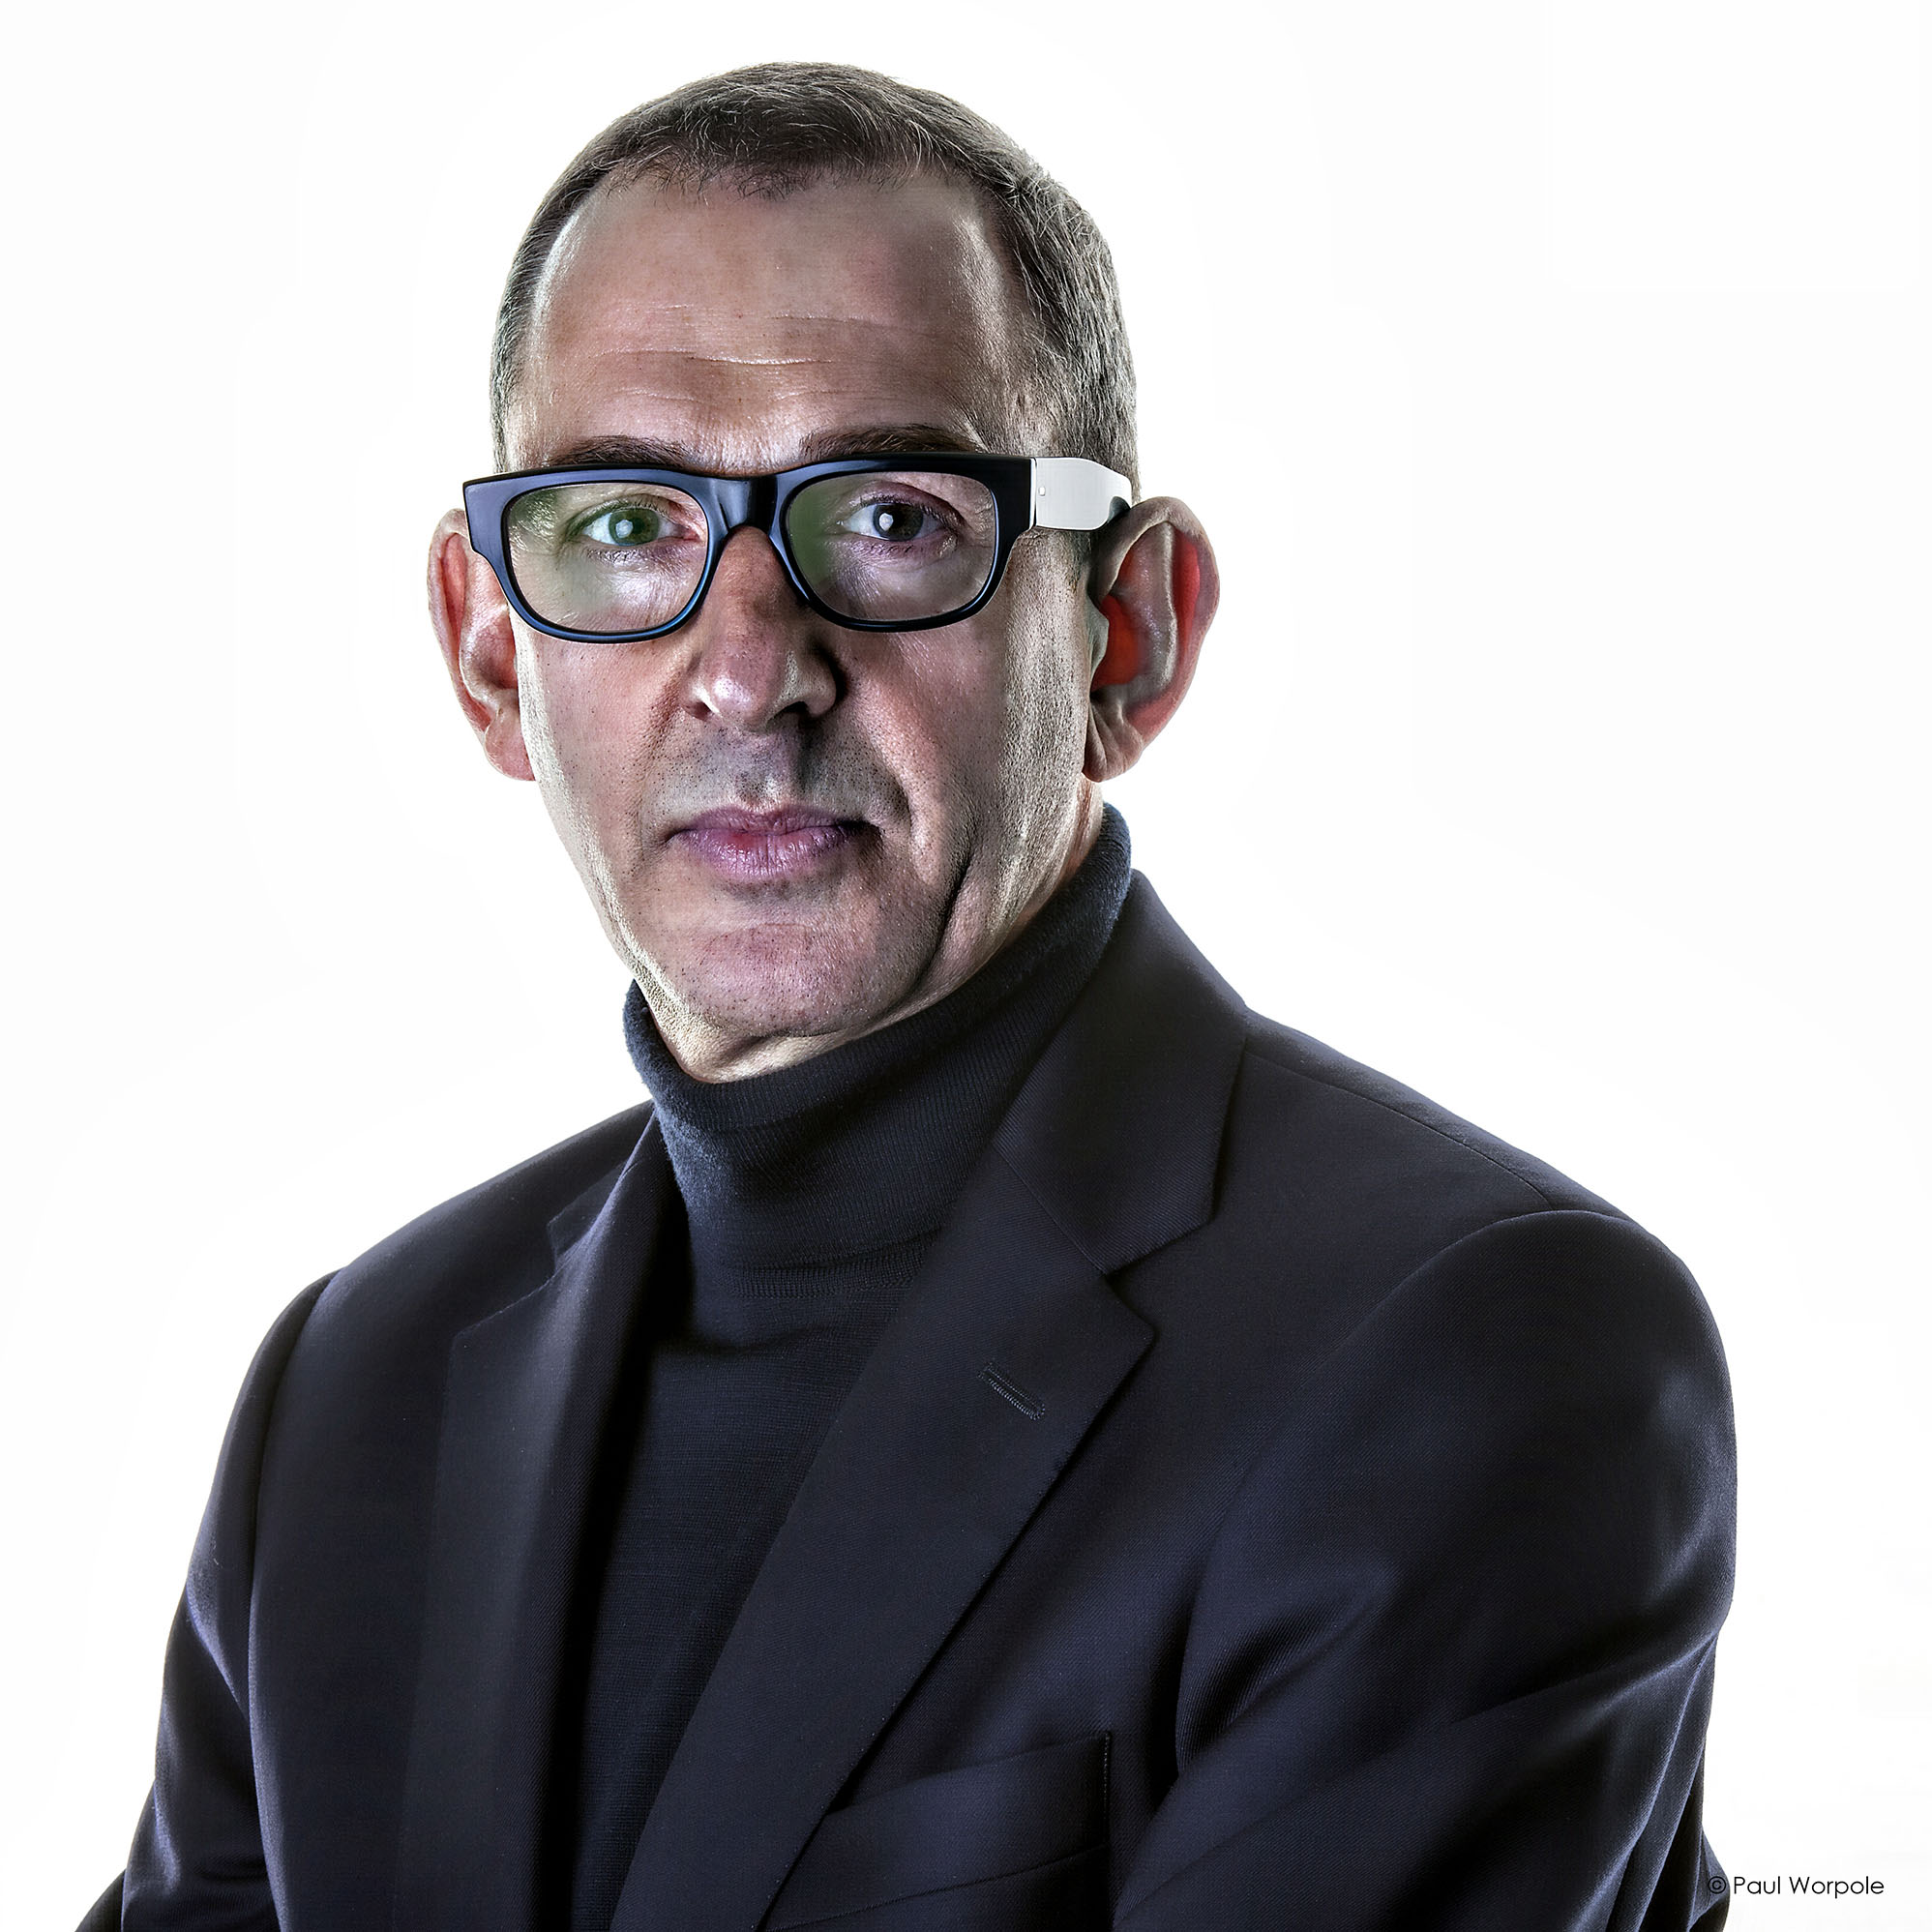 Business Photo Headshot of a Man with short Hair and Buddy Holly style glasses © Paul Worpole Photography